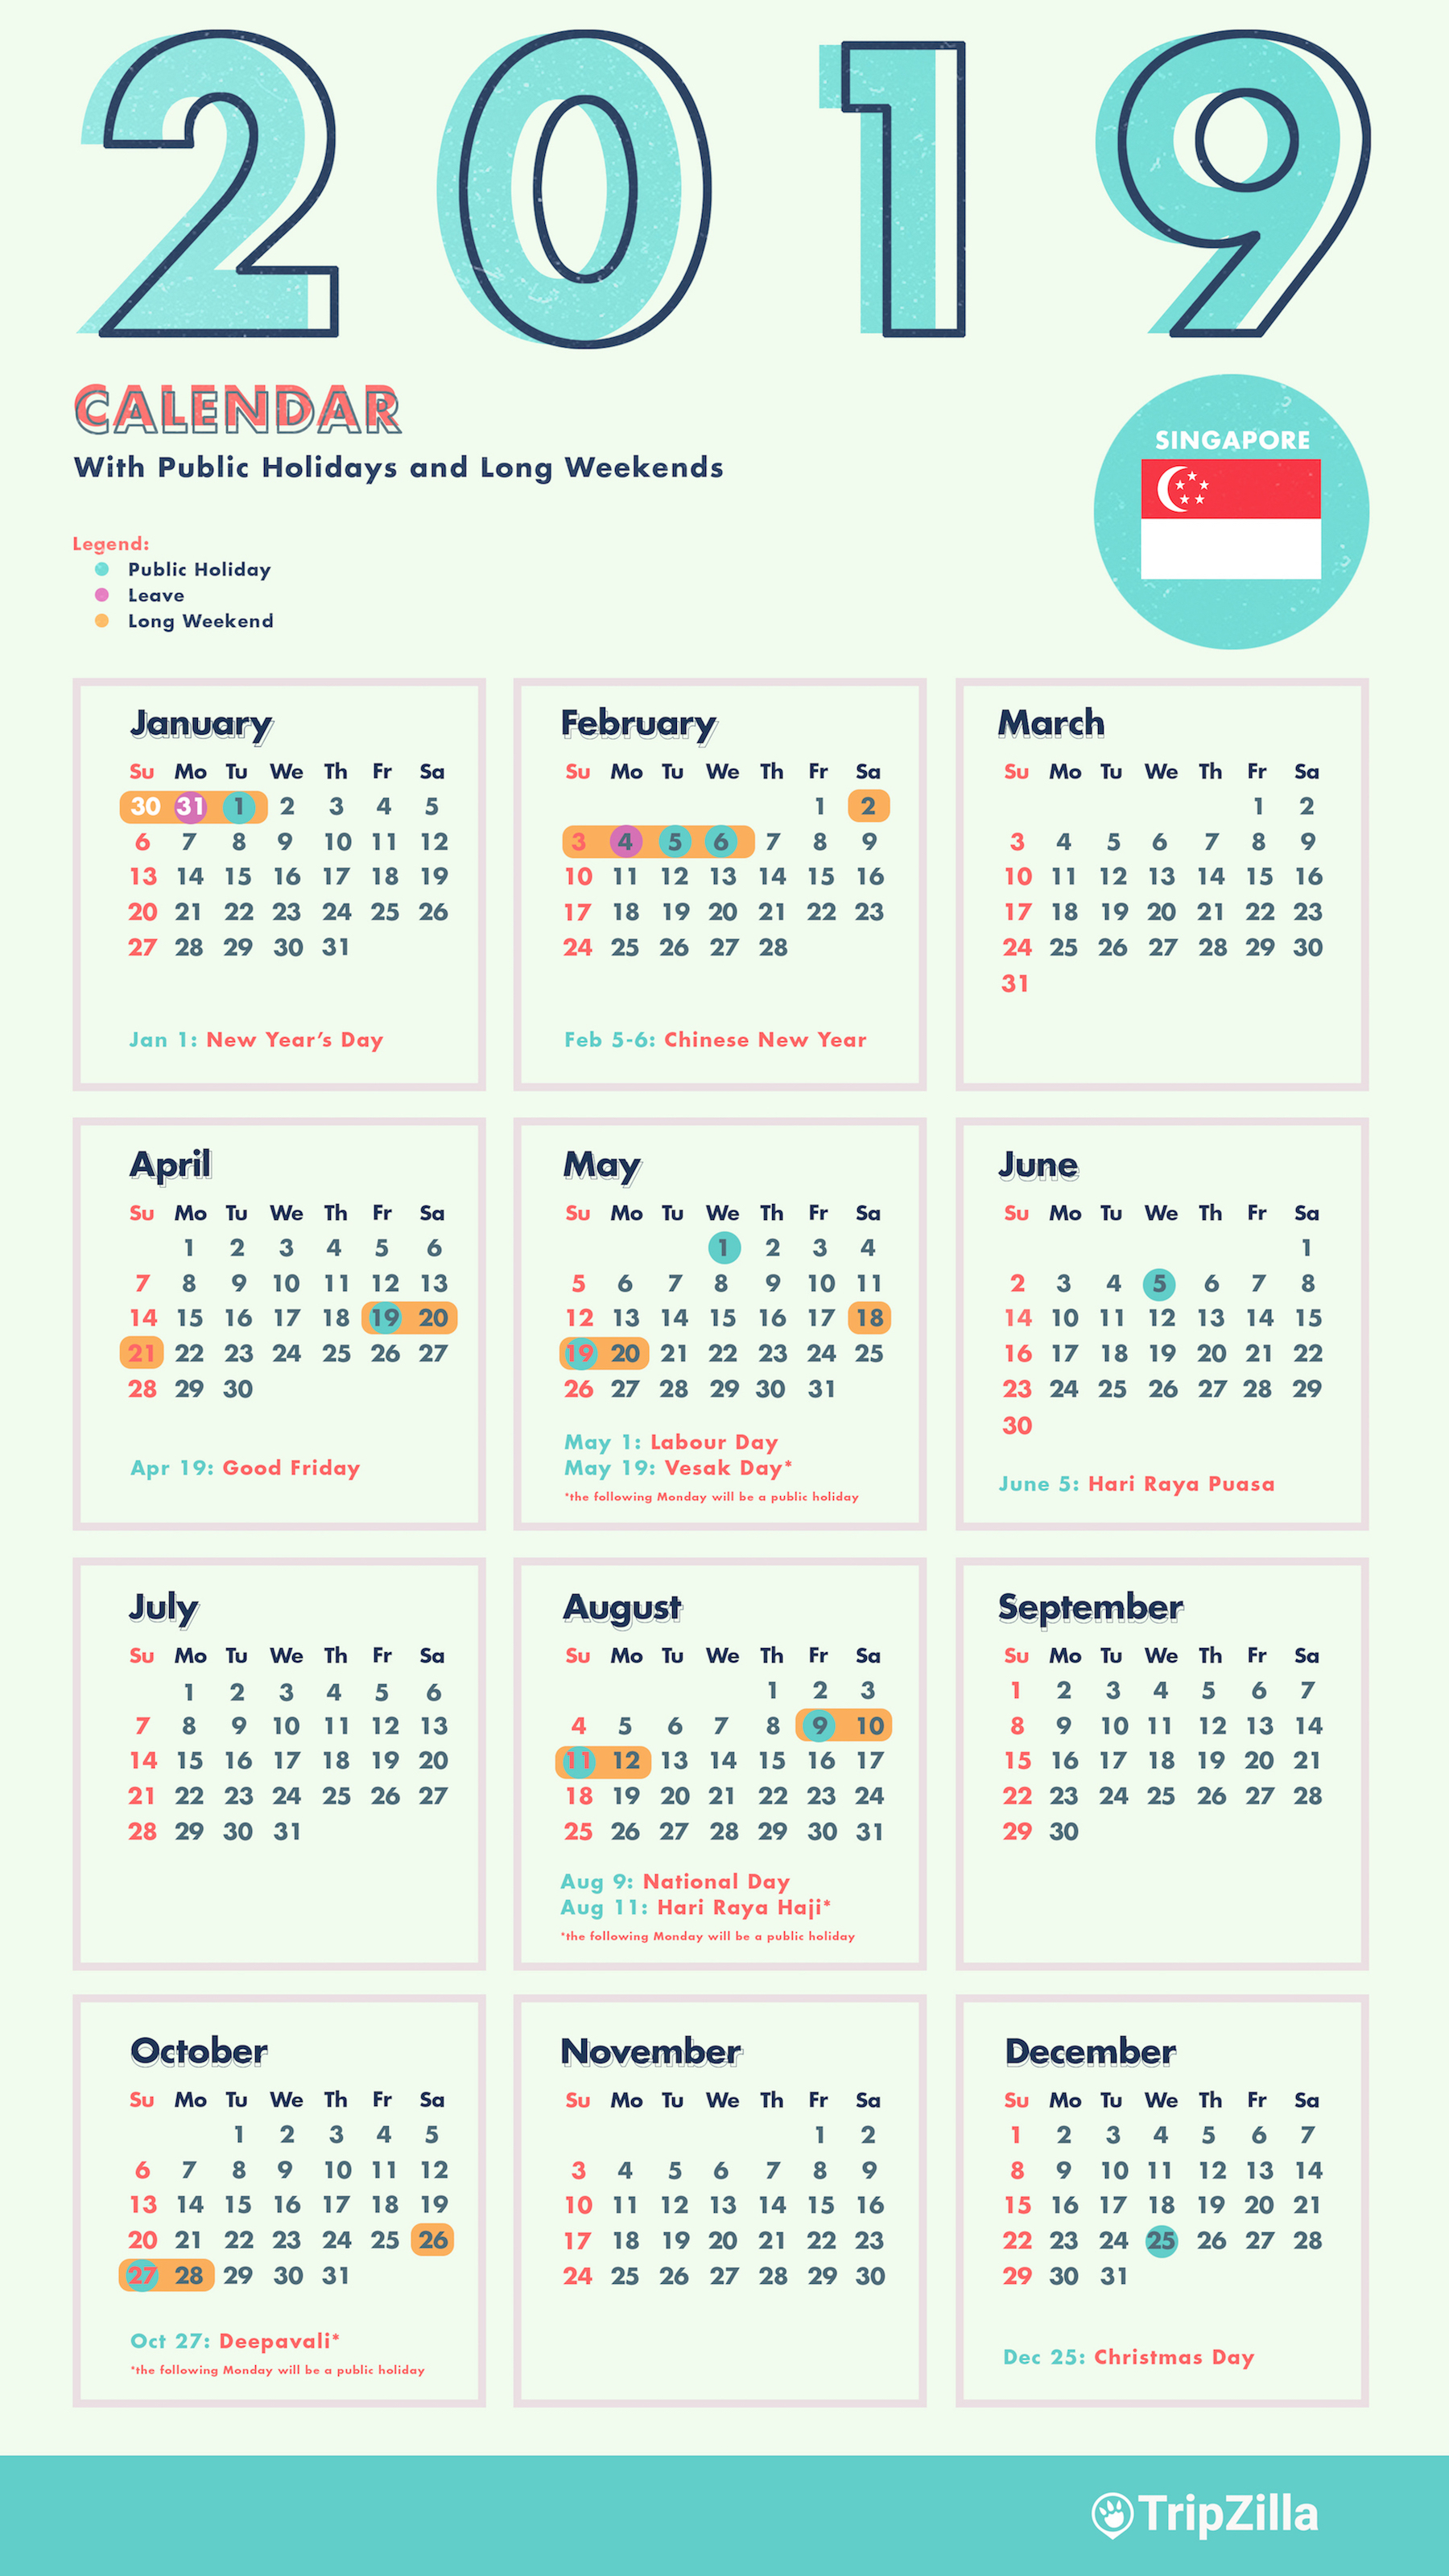 singapore 2019 public holidays and long weekends calendar new years day